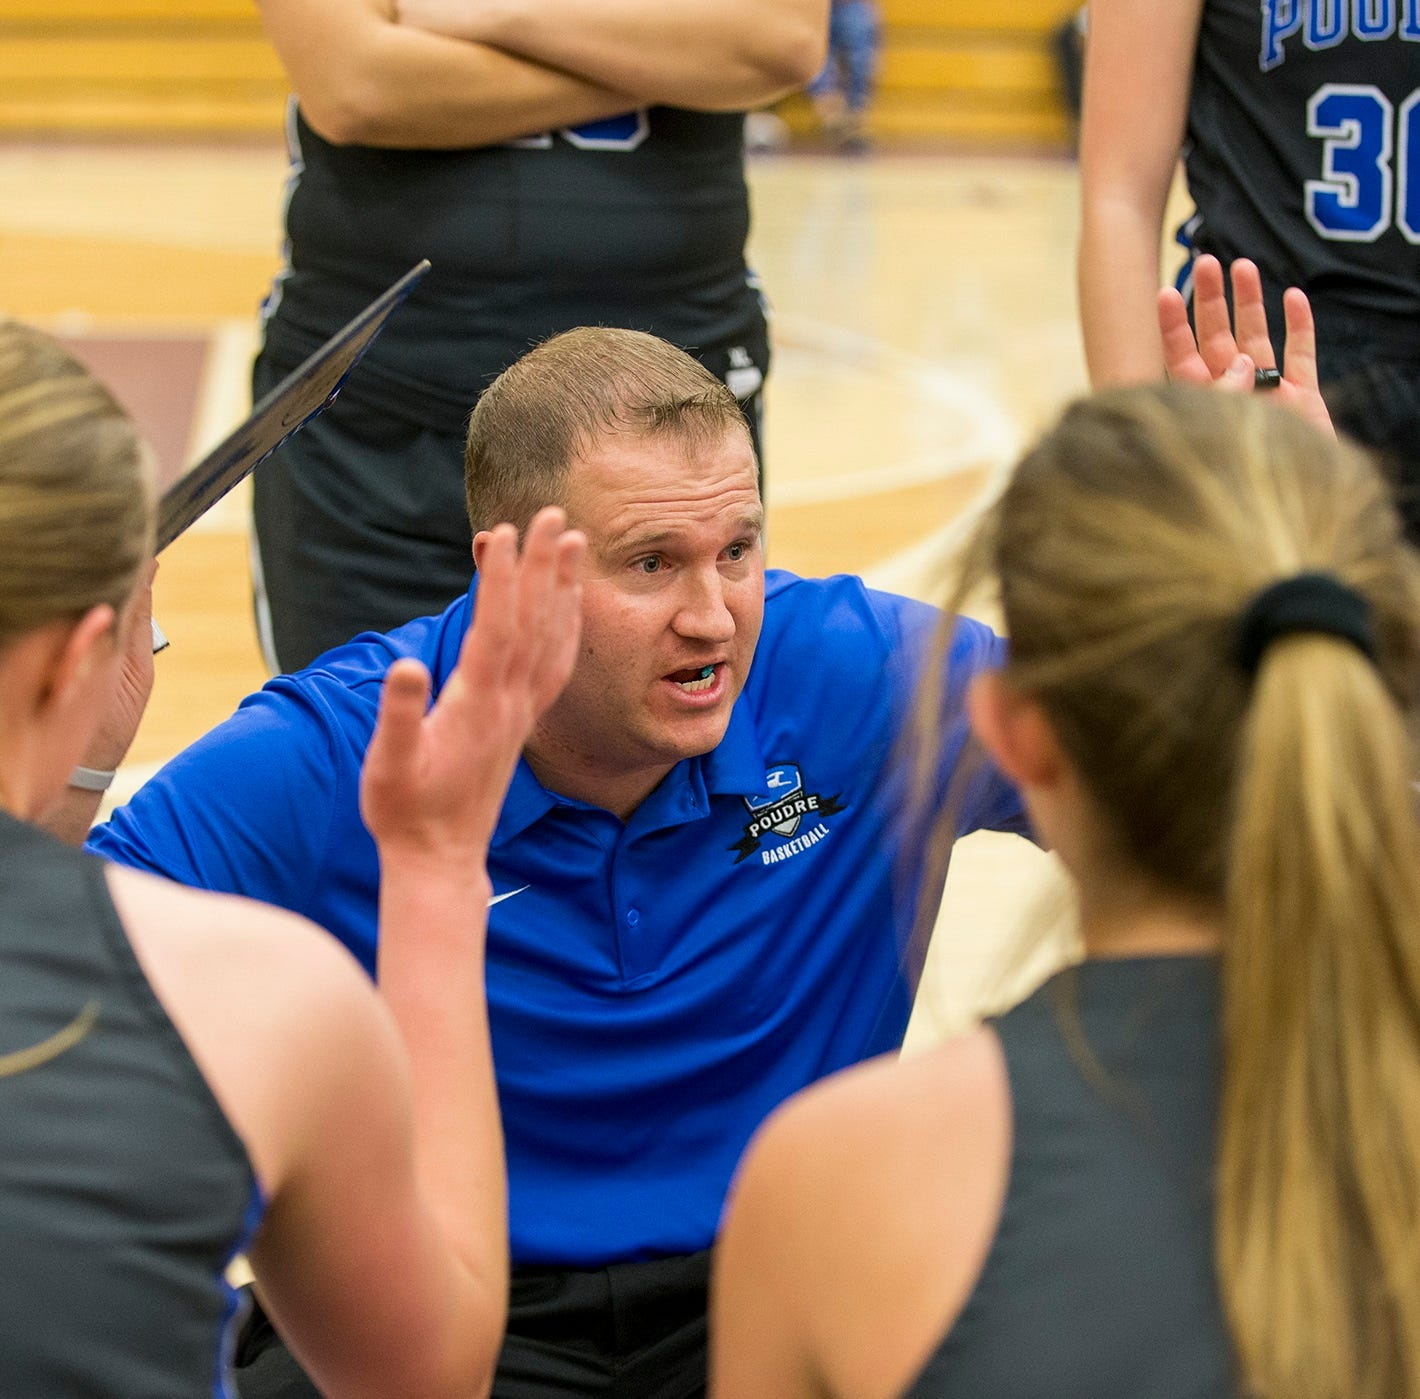 Poudre basketball coach Deric Yaussi steps down to take girls basketball job at Severance